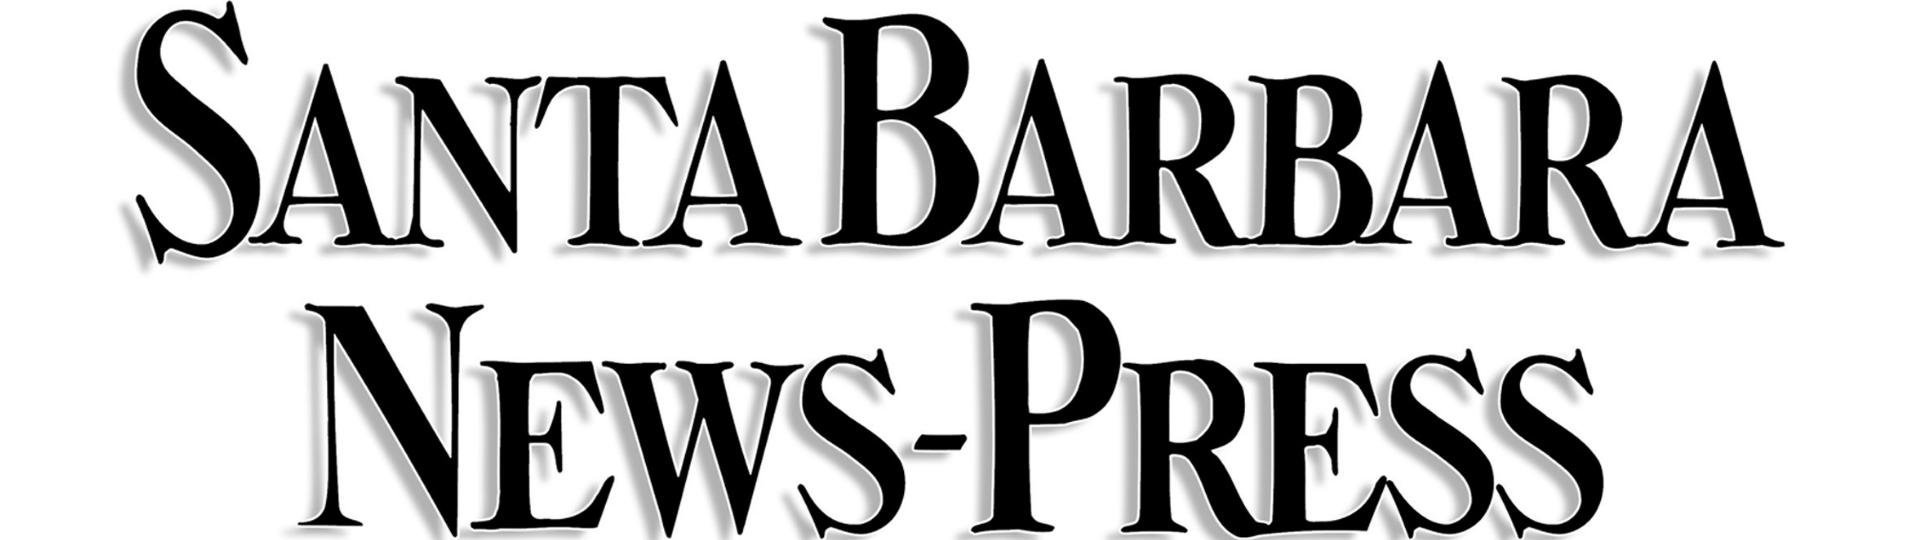 Santa Barbara News Press